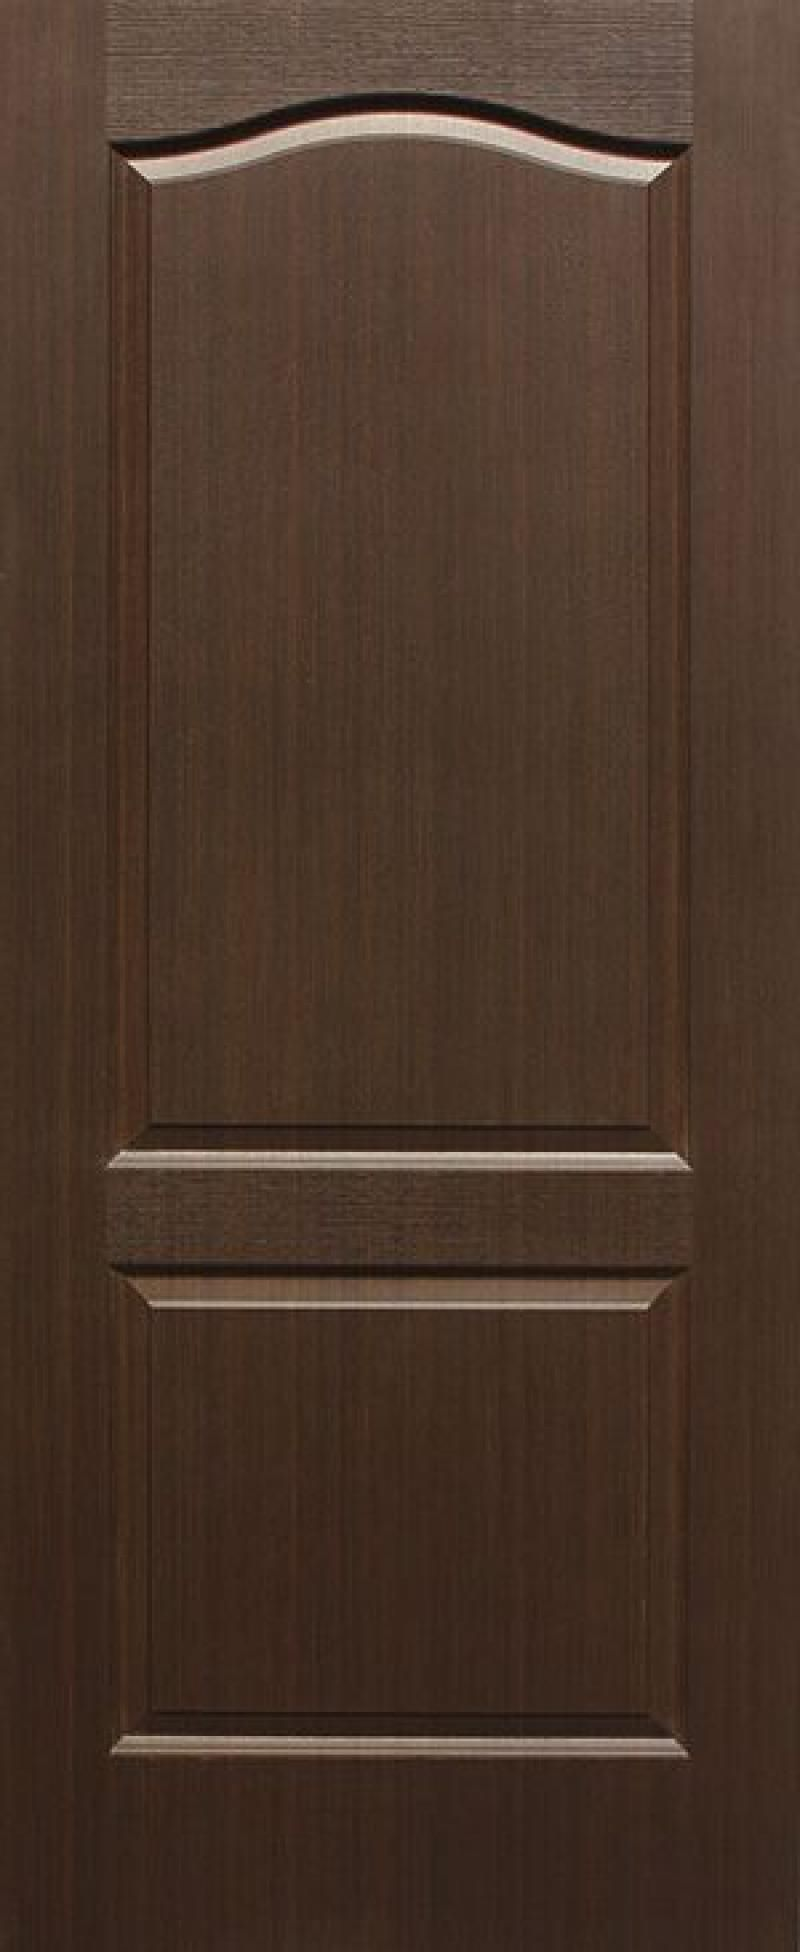 Brown masonite door in the living room